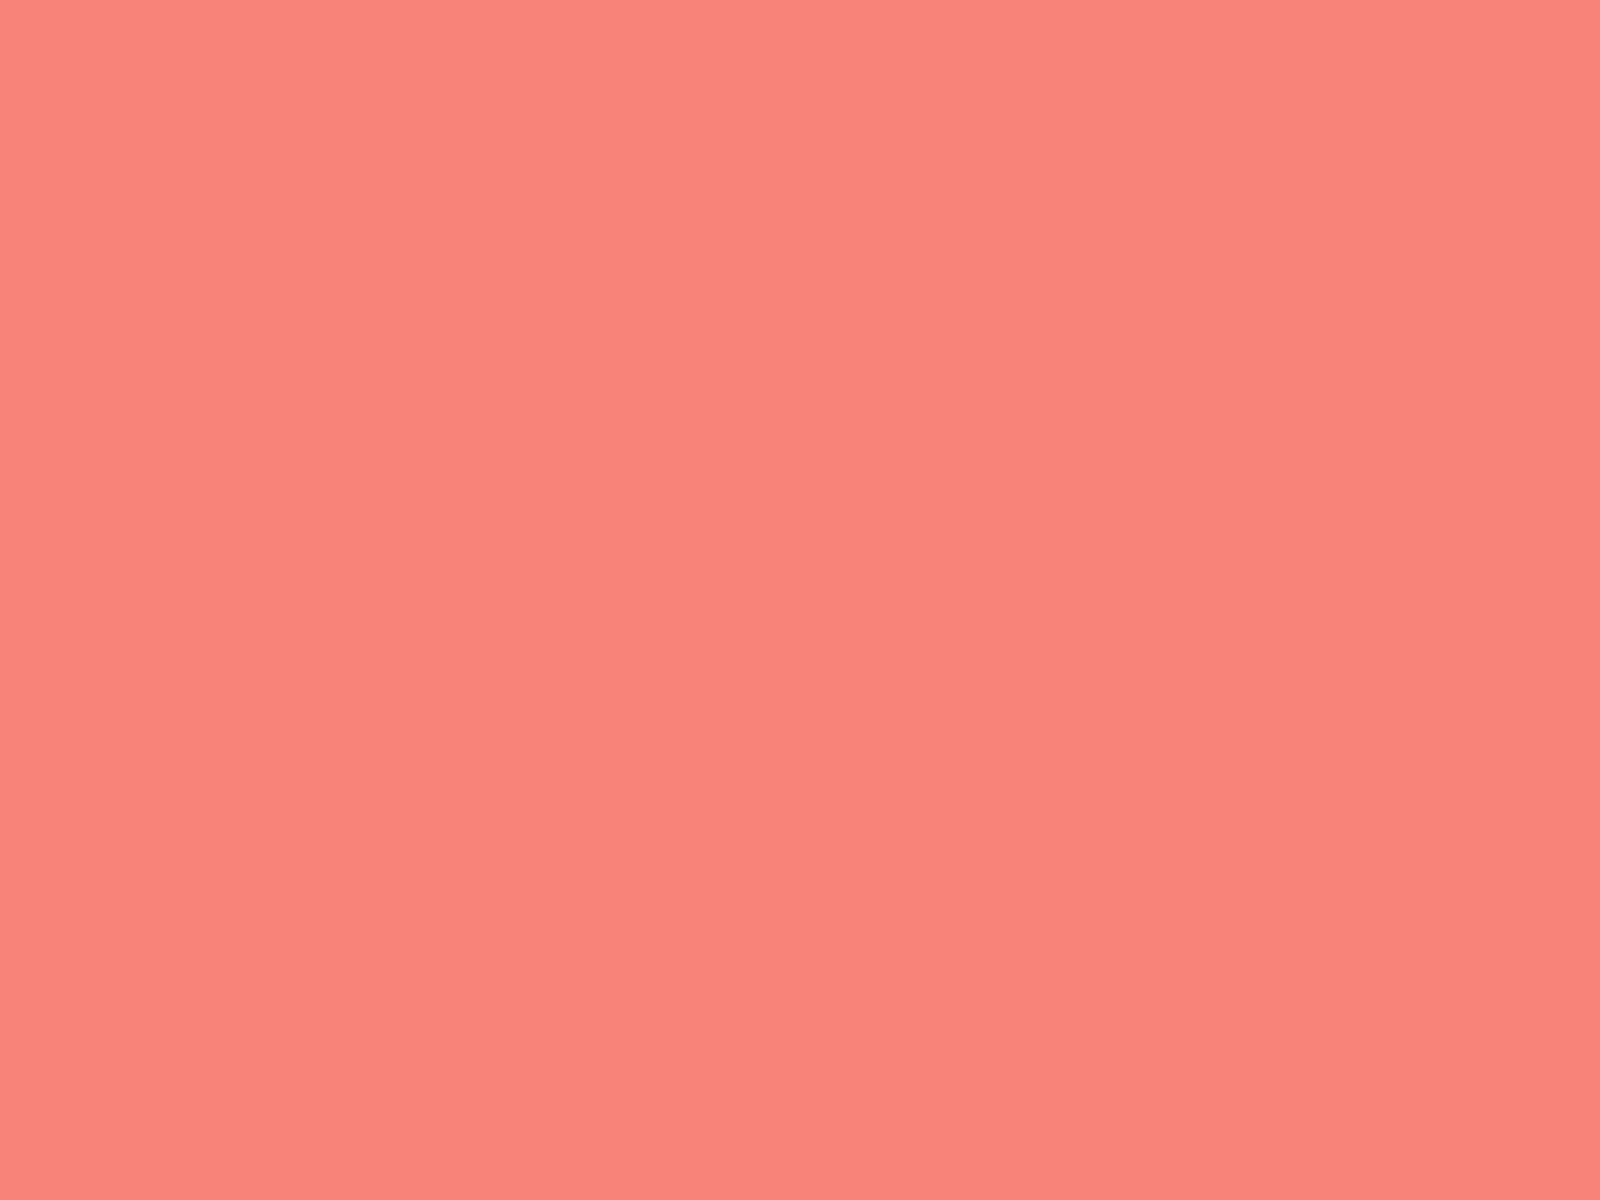 1600x1200 Tea Rose Orange Solid Color Background